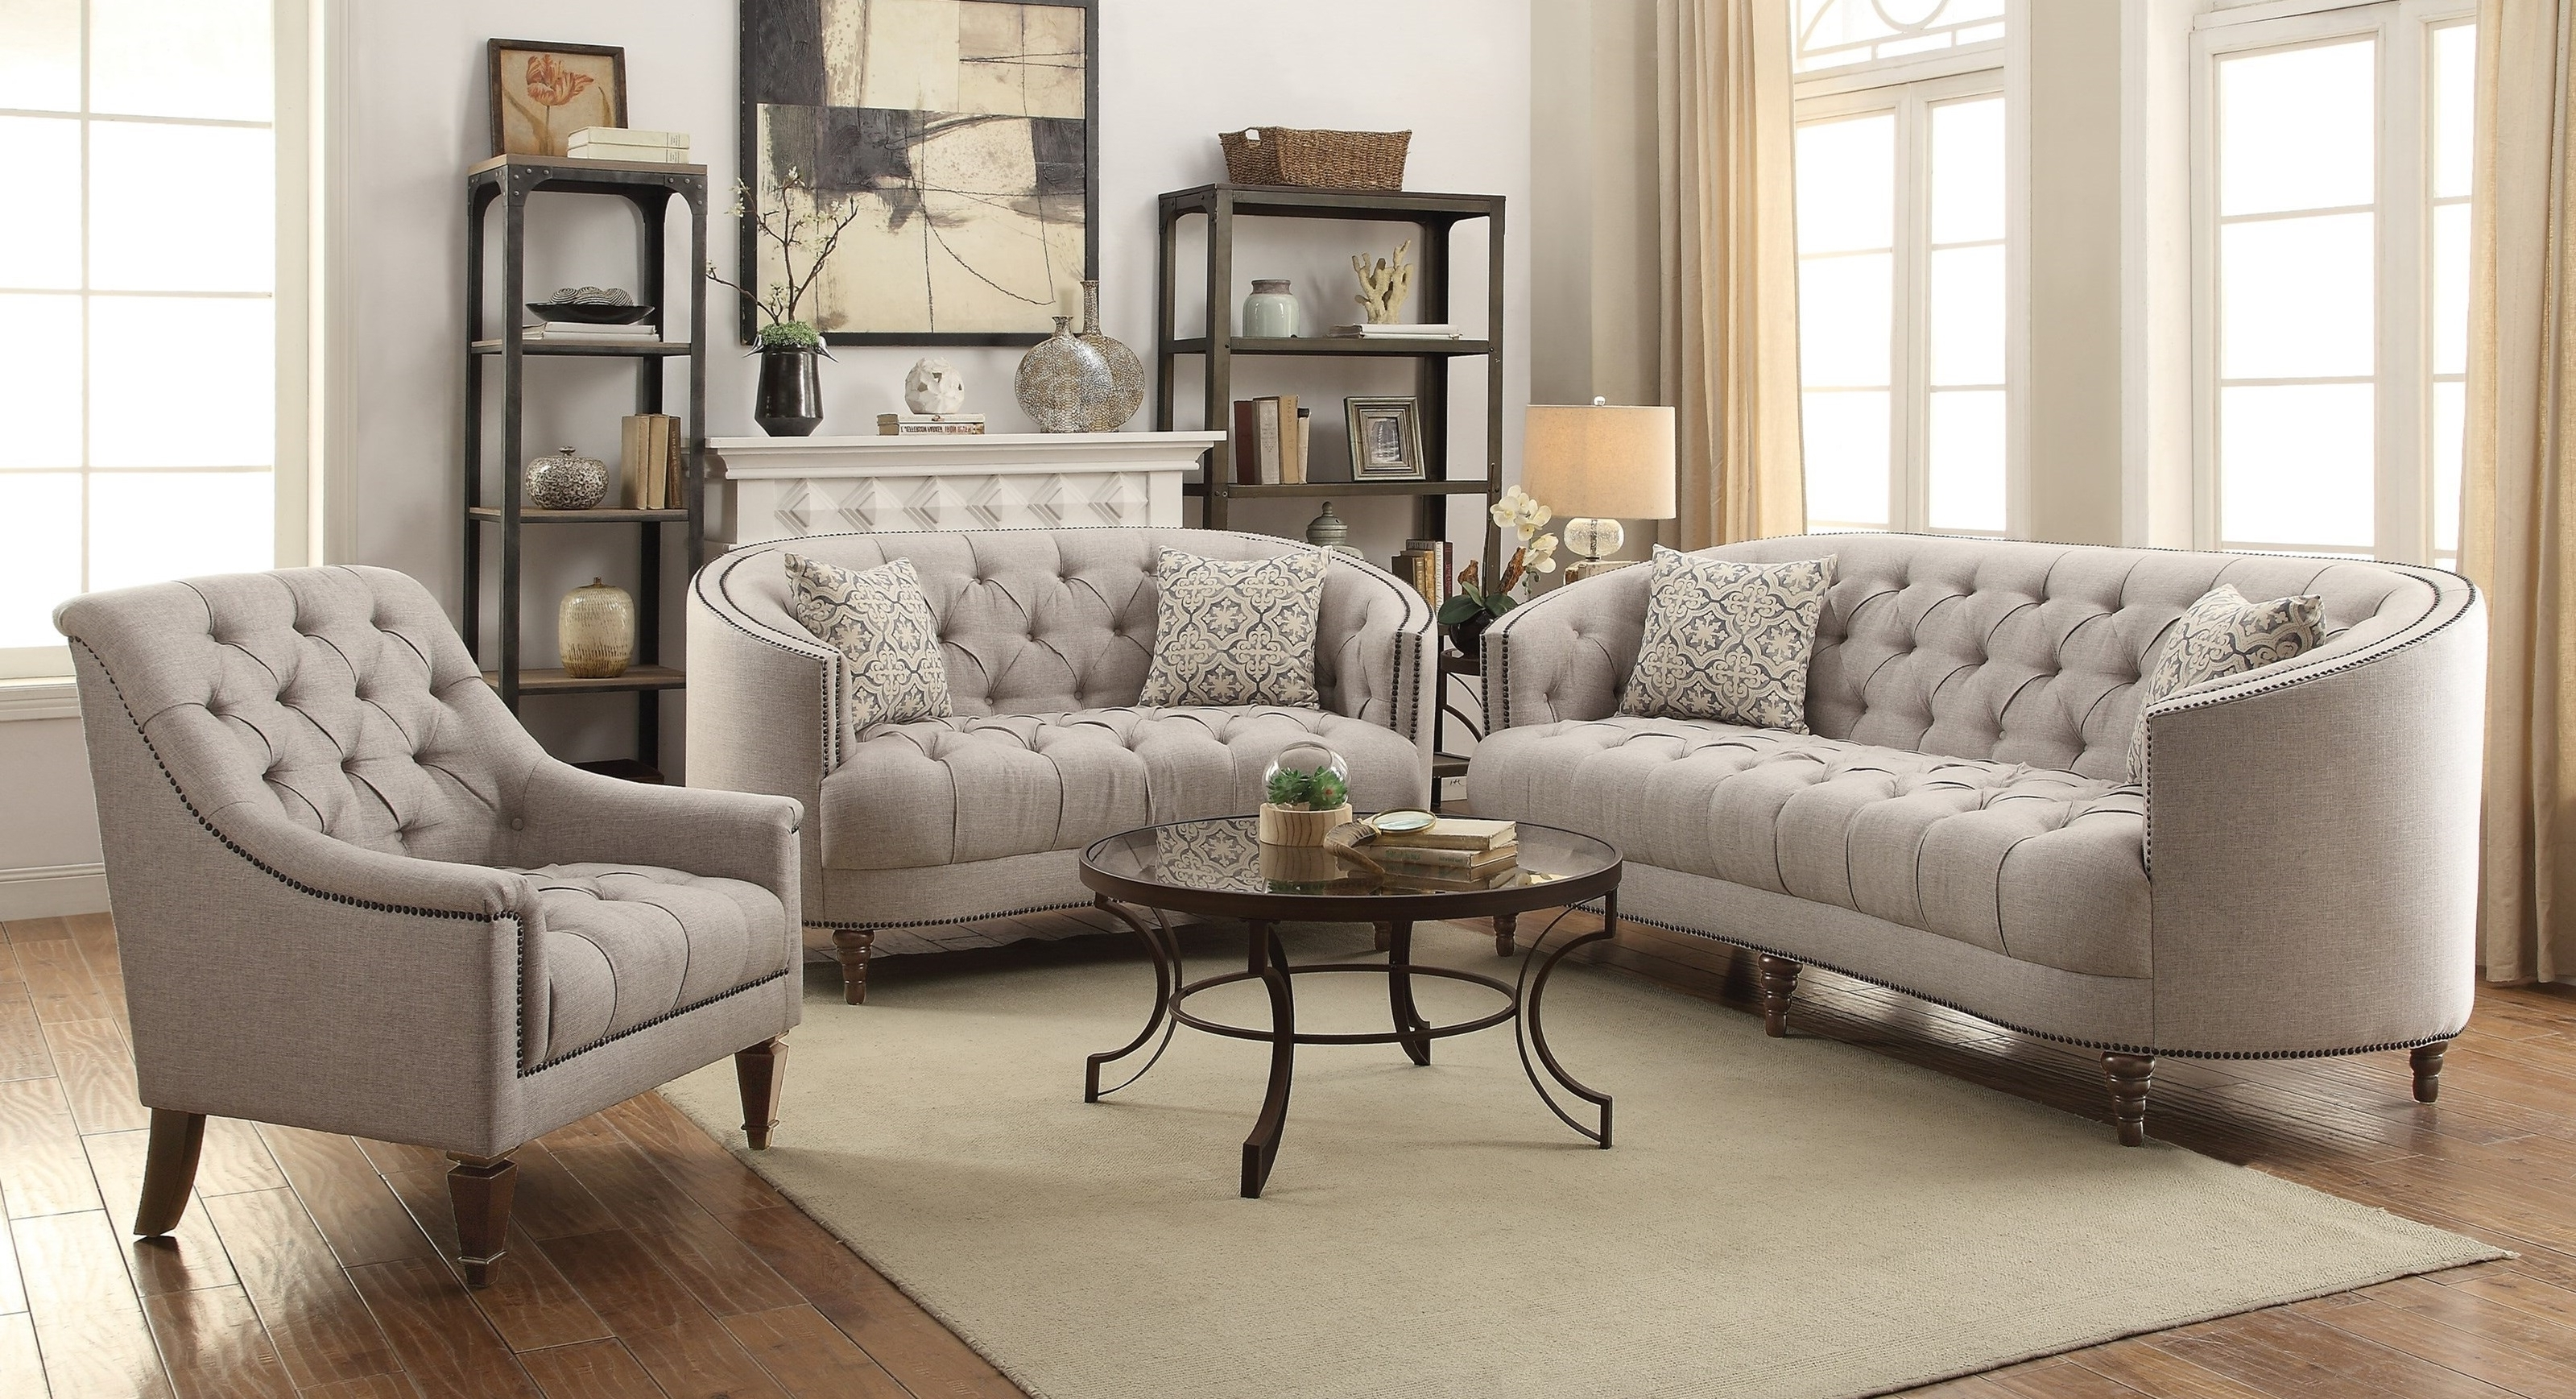 Widely Used Avonlea Sofa And Chair Set – 505641 Pertaining To C Shaped Sofas (View 19 of 20)